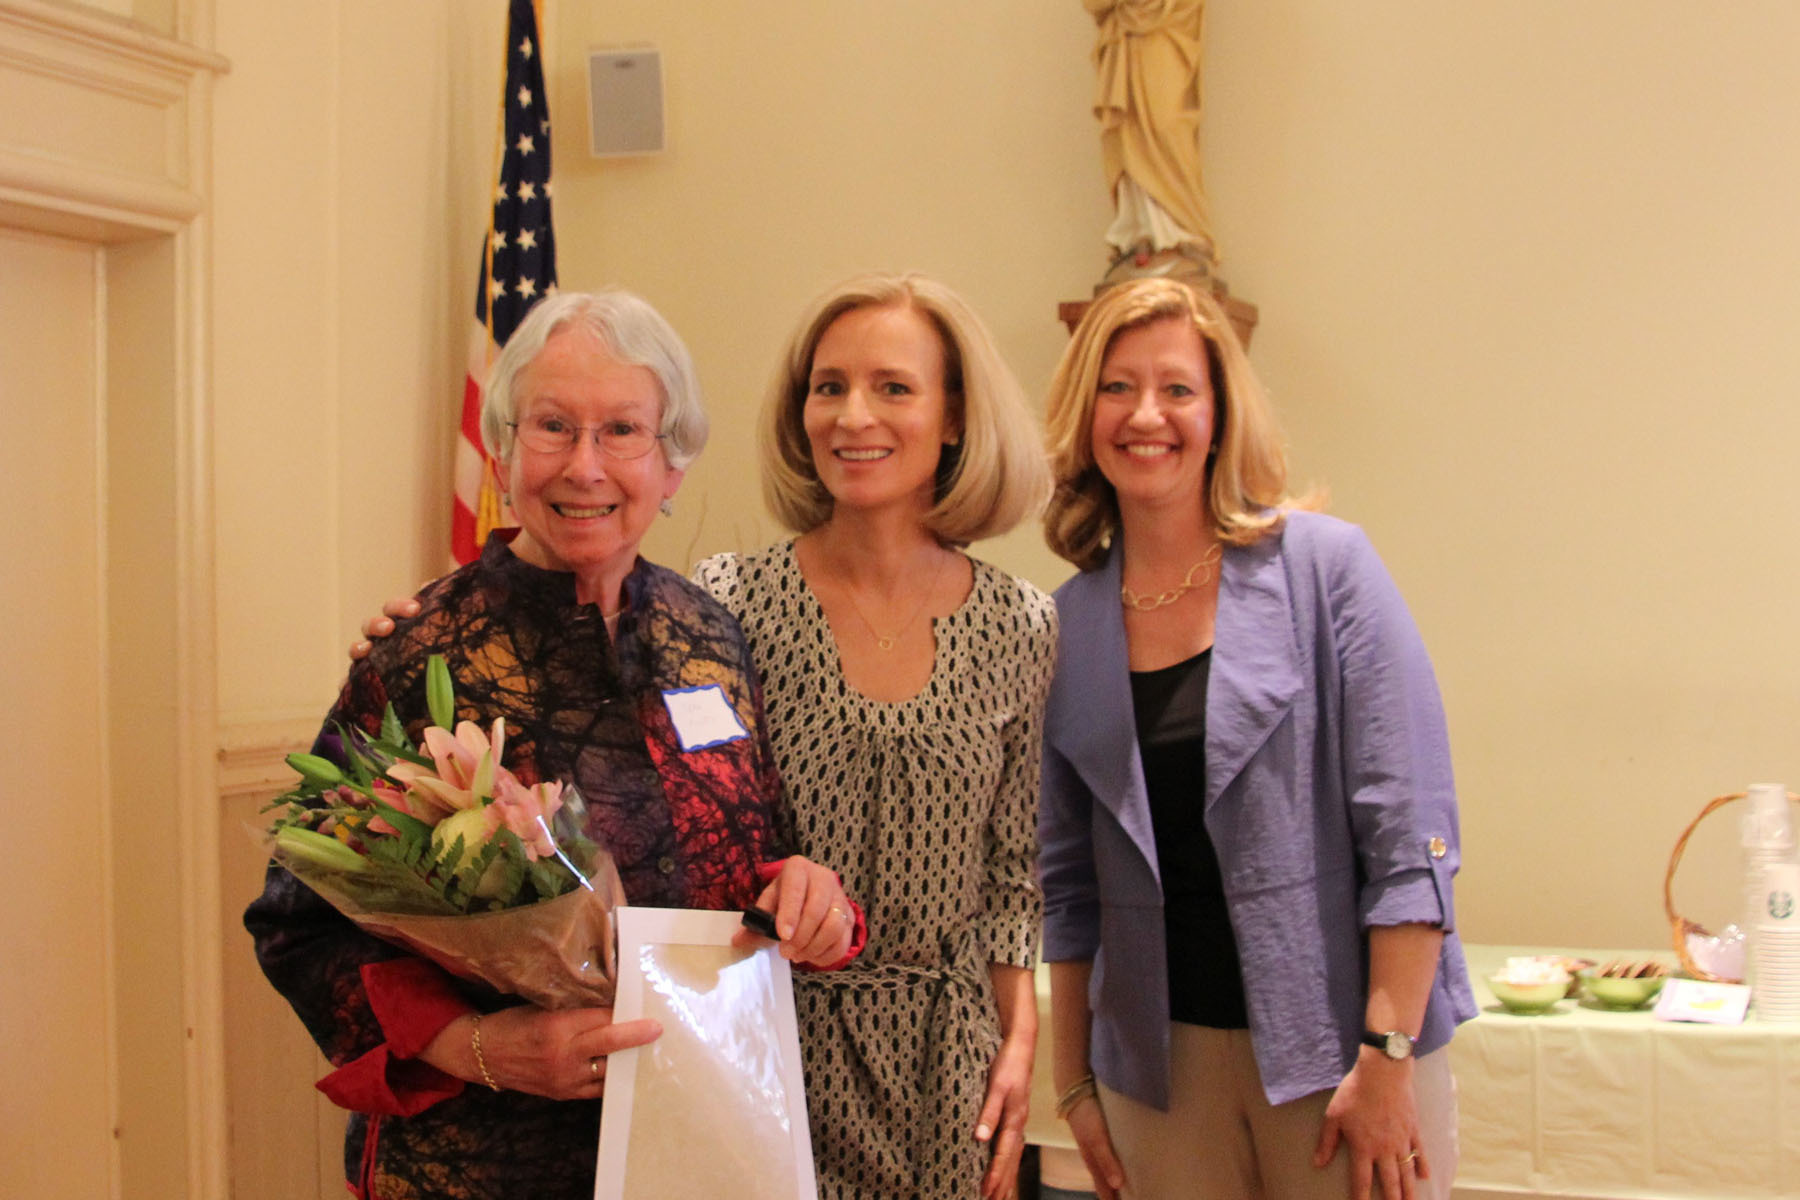 Fiory Receives Christ Child Society 2015 Virginia Merrick Award at Annual Baby Shower